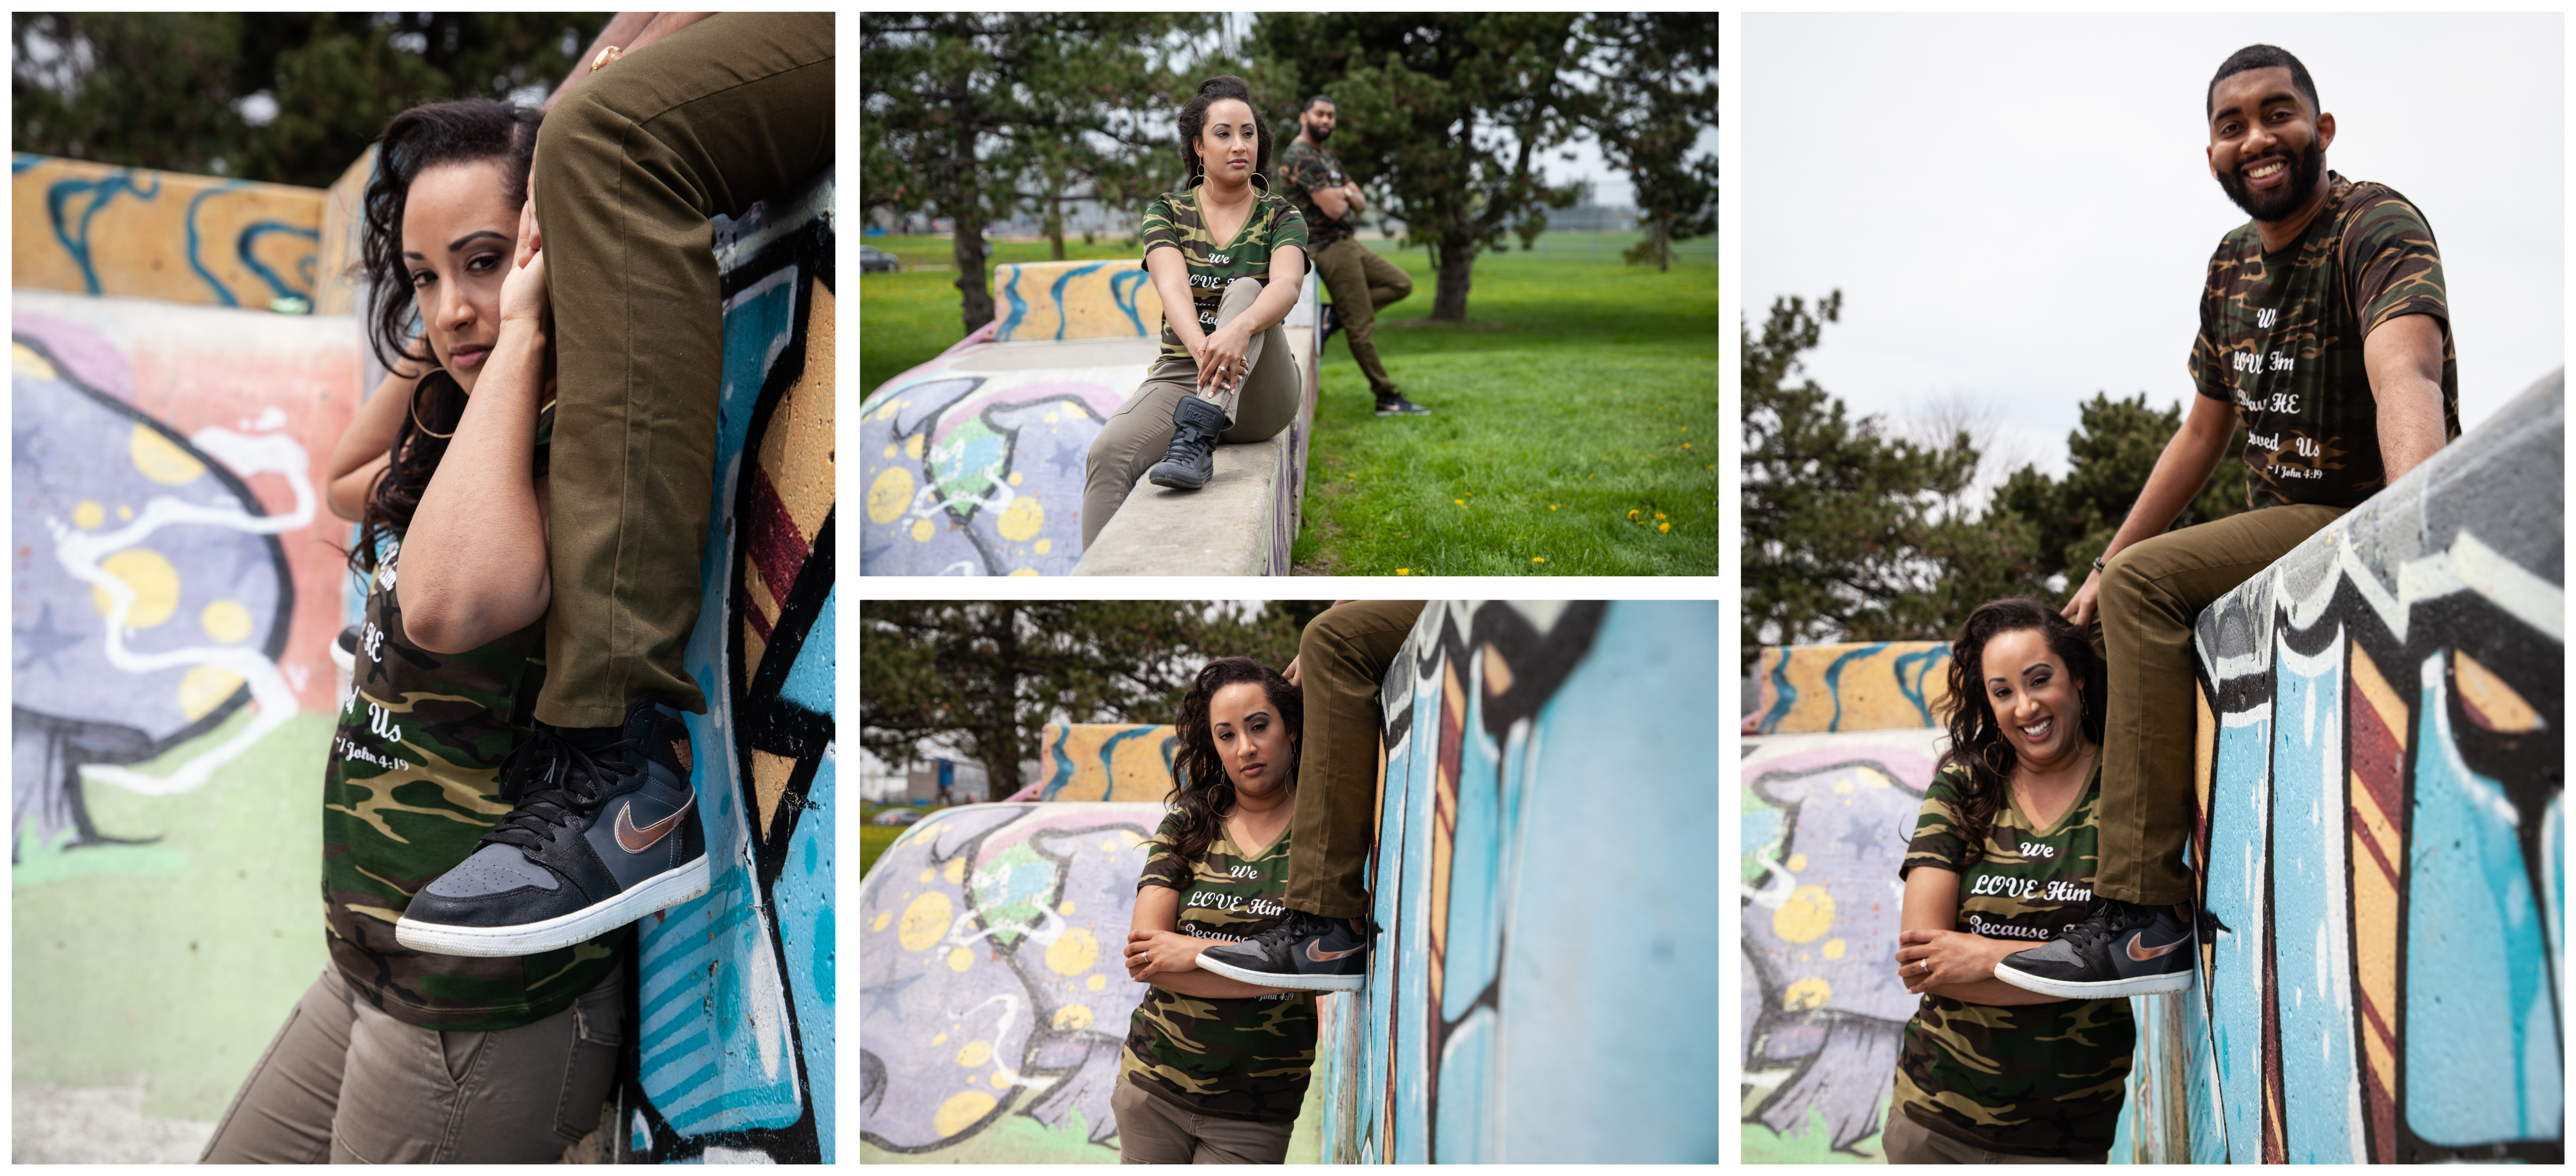 Engagement photoshoot at a Skate Park in Whitby